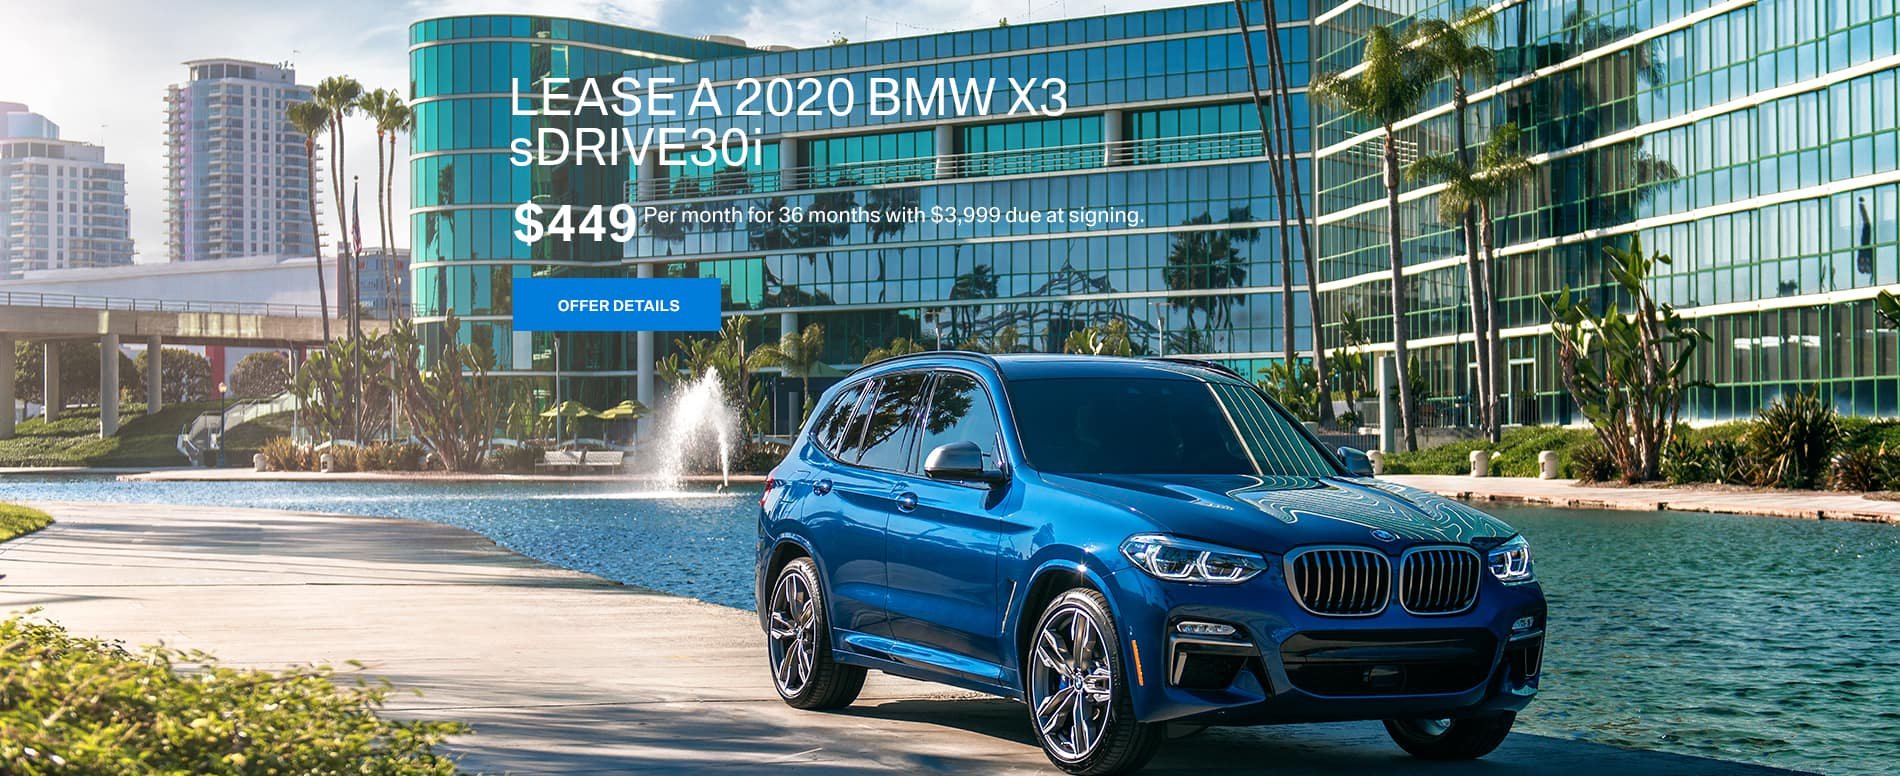 Lease a 2020 BMW X3 sDRIVE30i for $449 per month at BMW of Fort Walton Beach